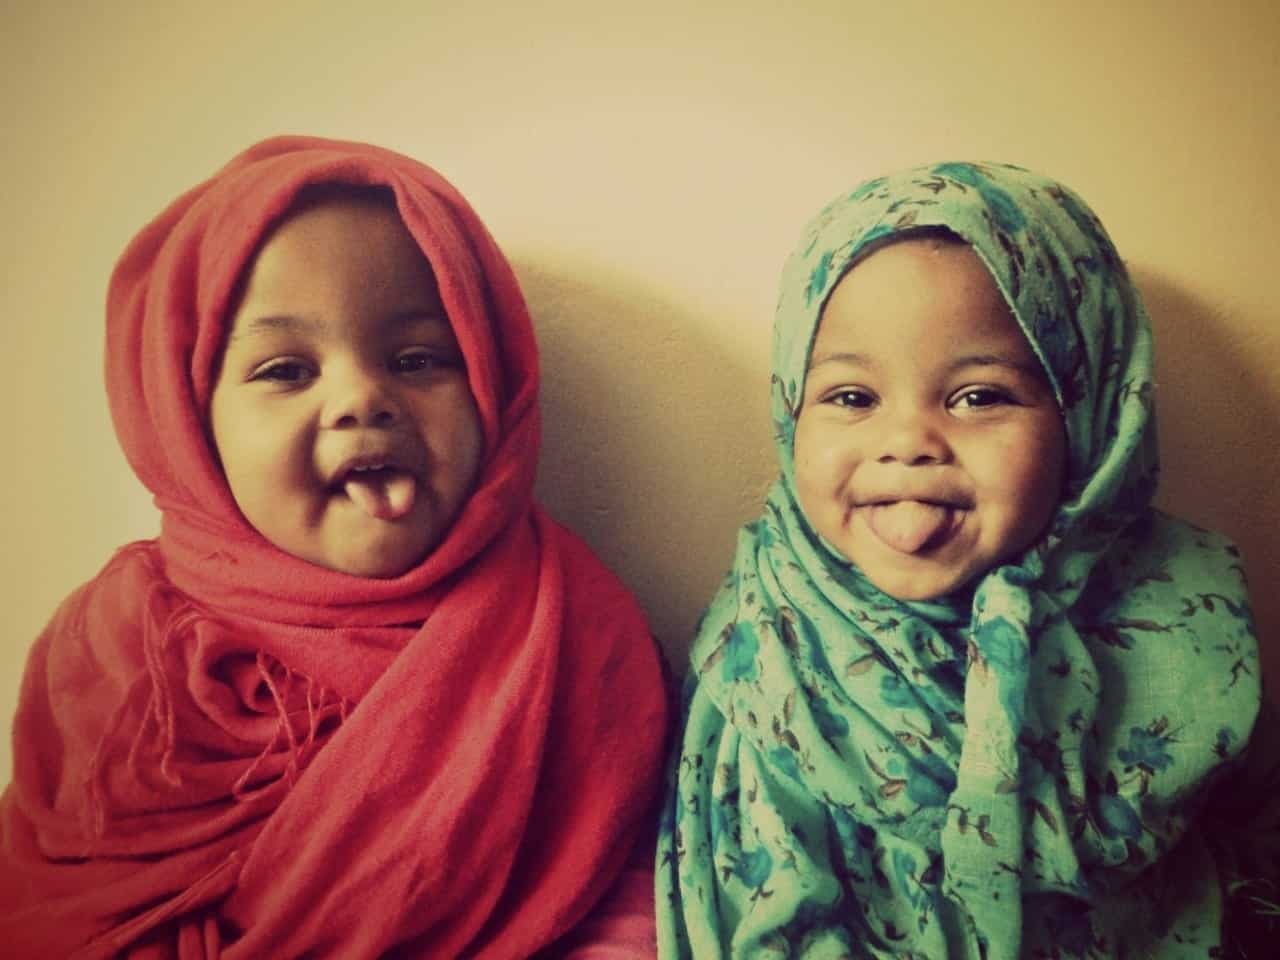 mgh21 30 Cute Pictures of Baby Girls In Hijab will Melt your heart